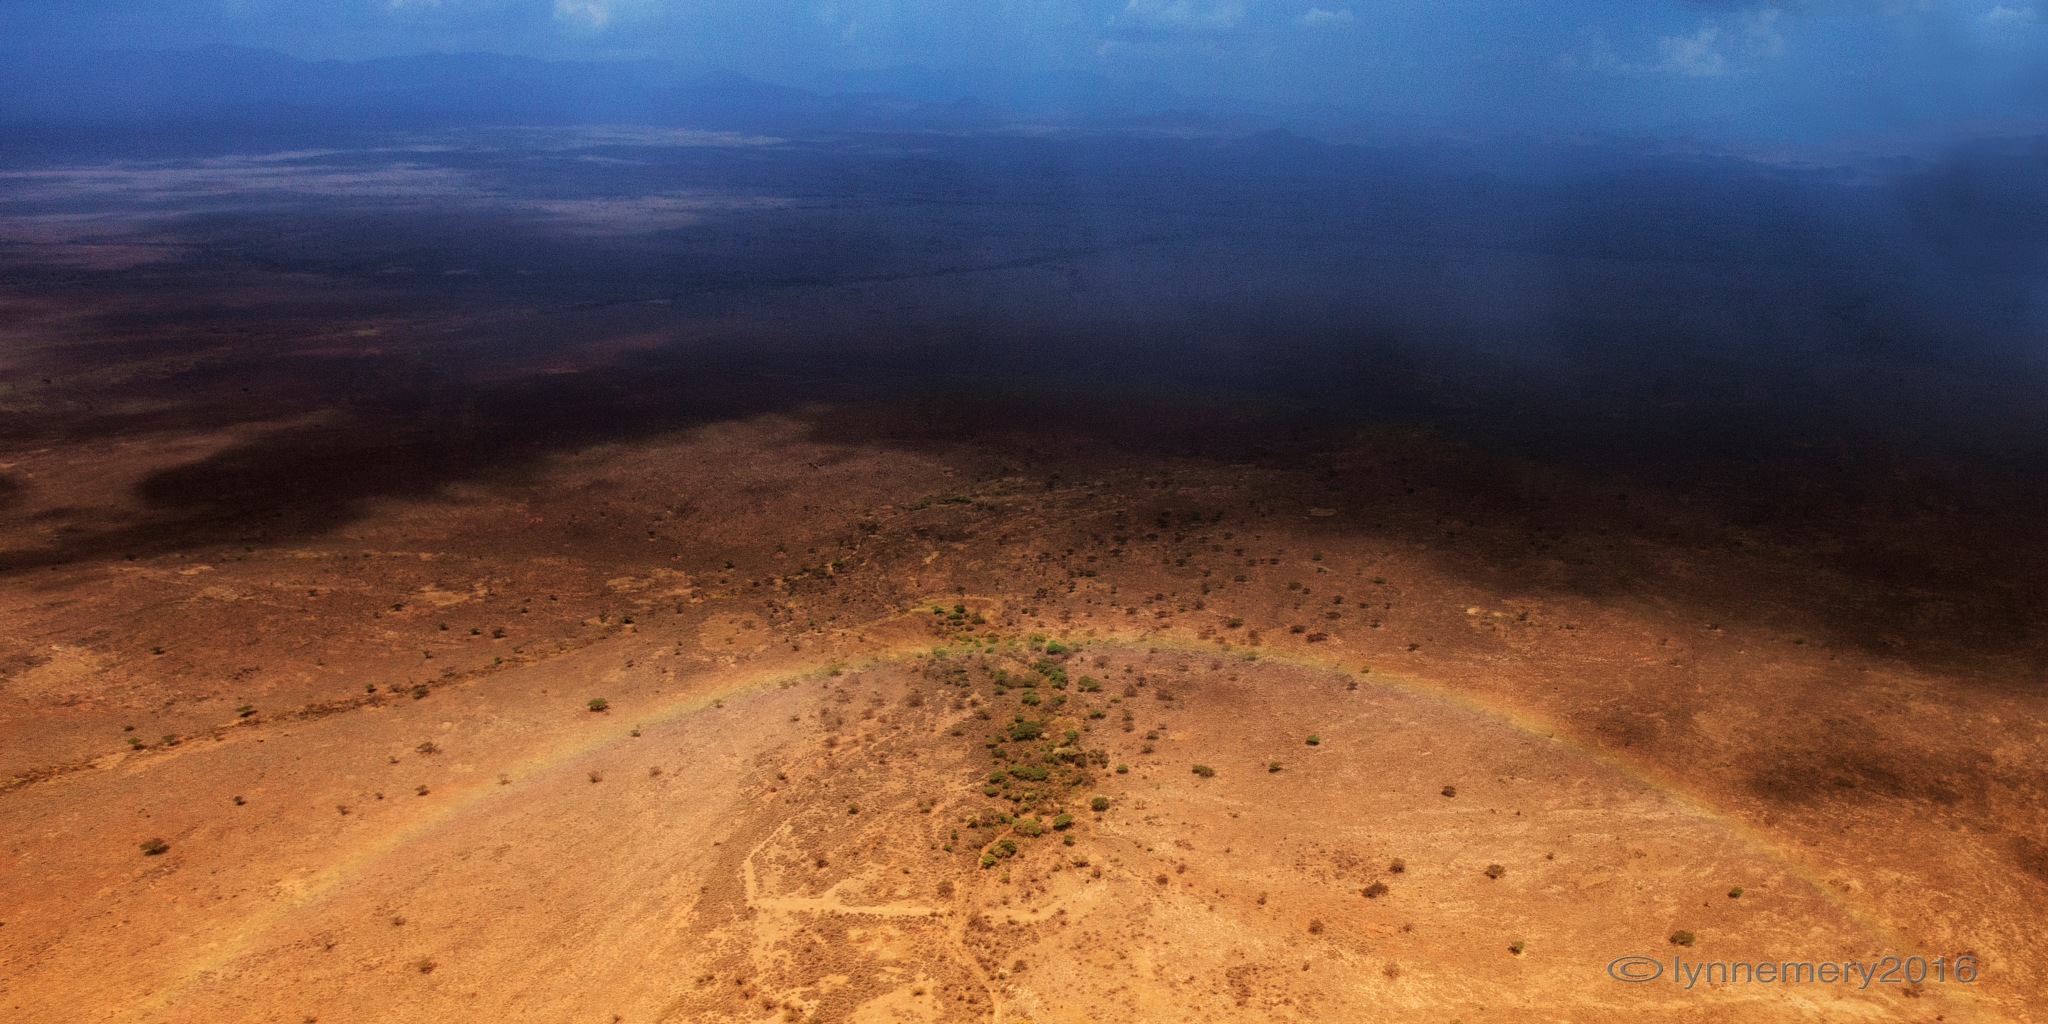 the rains in Africa meet somewhere over the rainbow by Lynn Emery